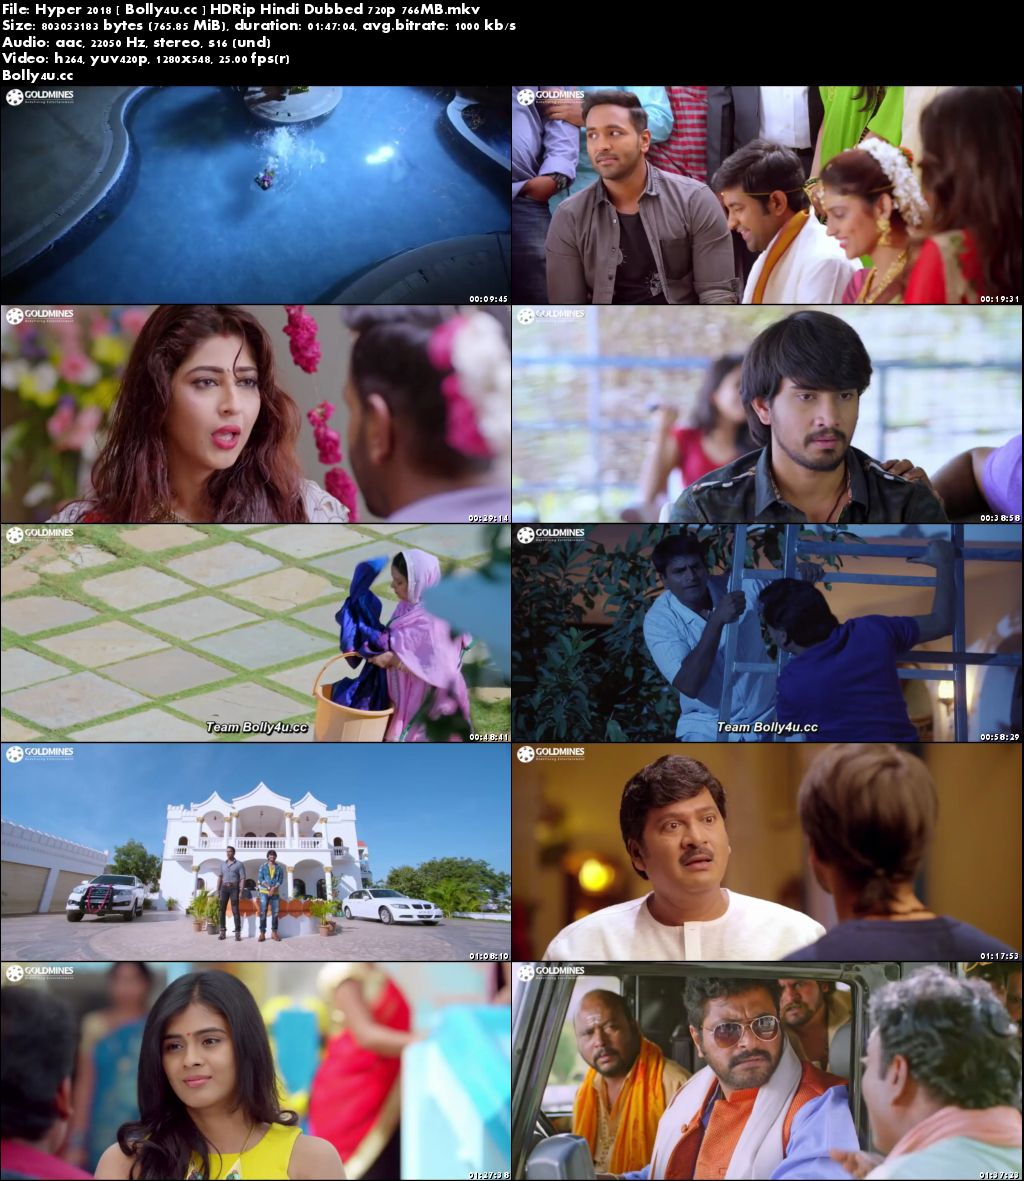 Hyper 2018 HDRip 750MB Hindi Dubbed 720p Download